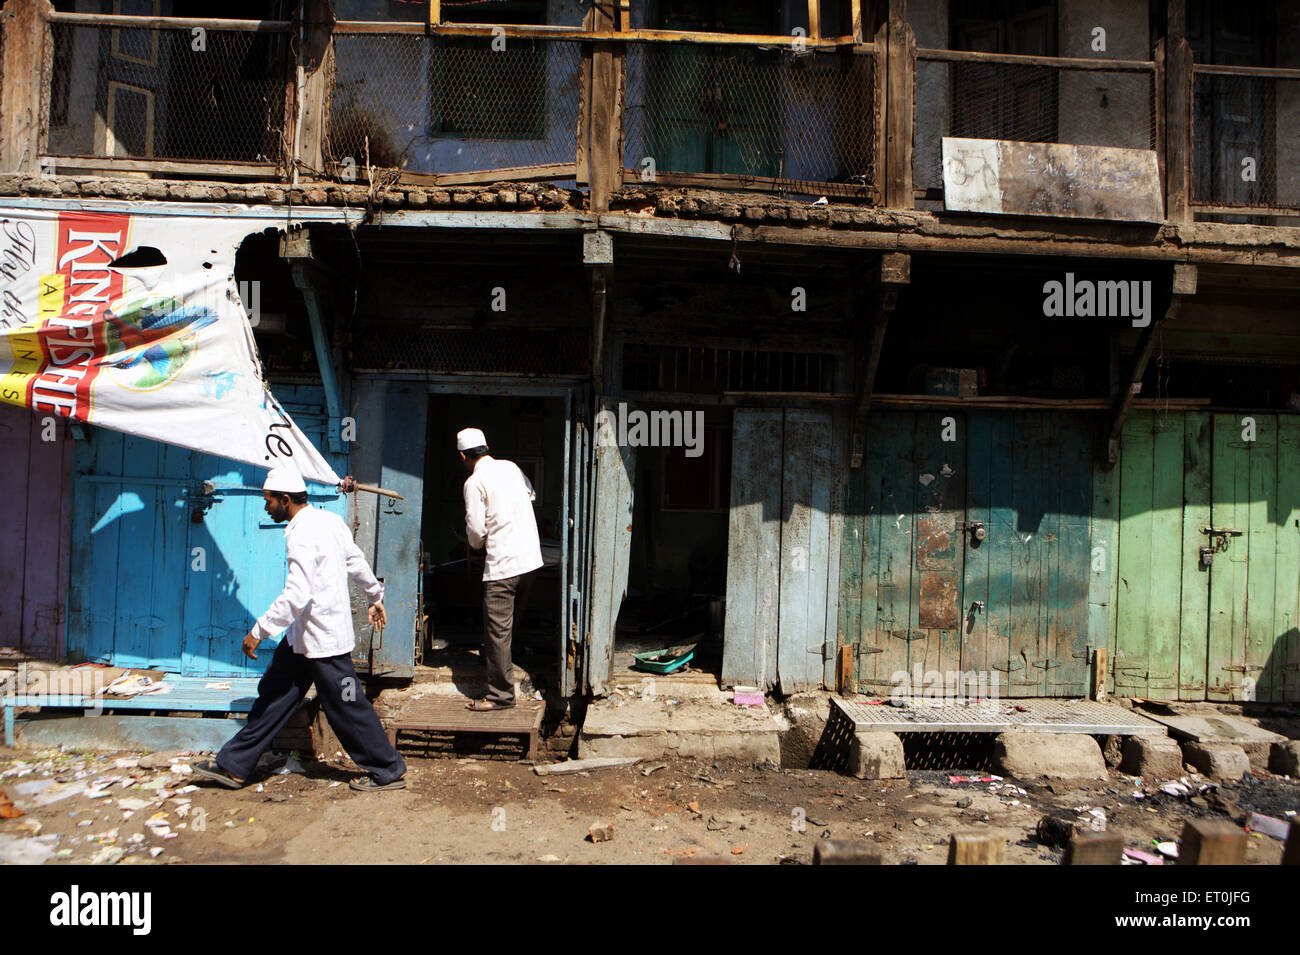 Shopkeepers monitoring losses to their property after bomb blast on 29 September 2008 in textile town of Malegaon - Stock Image